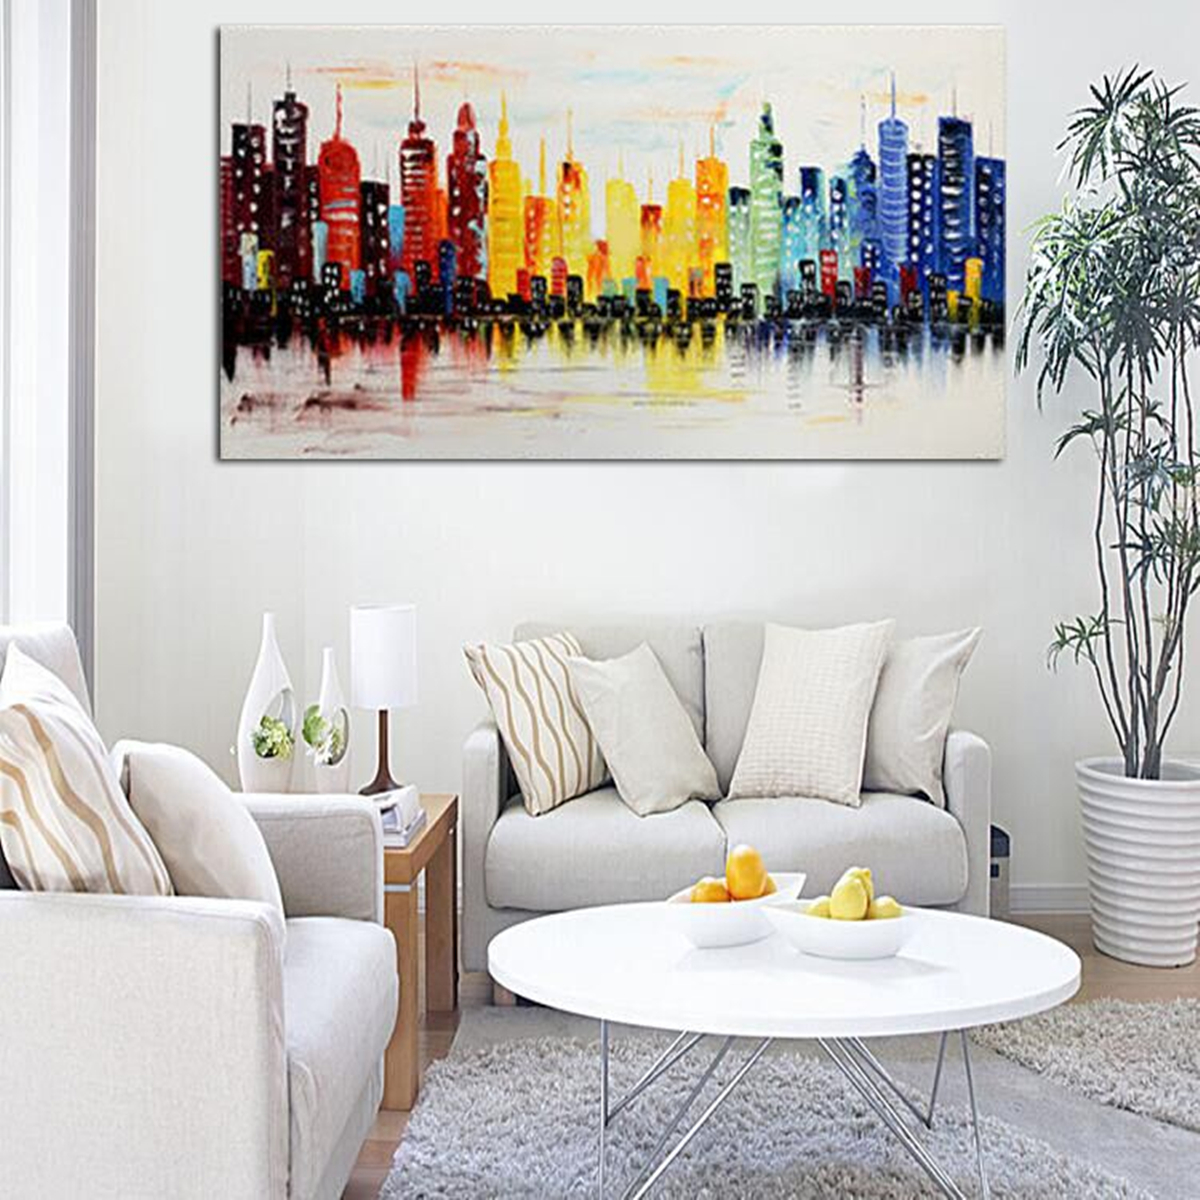 120x60cm modern city canvas abstract painting print living room art wall decor no frame at banggood Contemporary wall art for living room